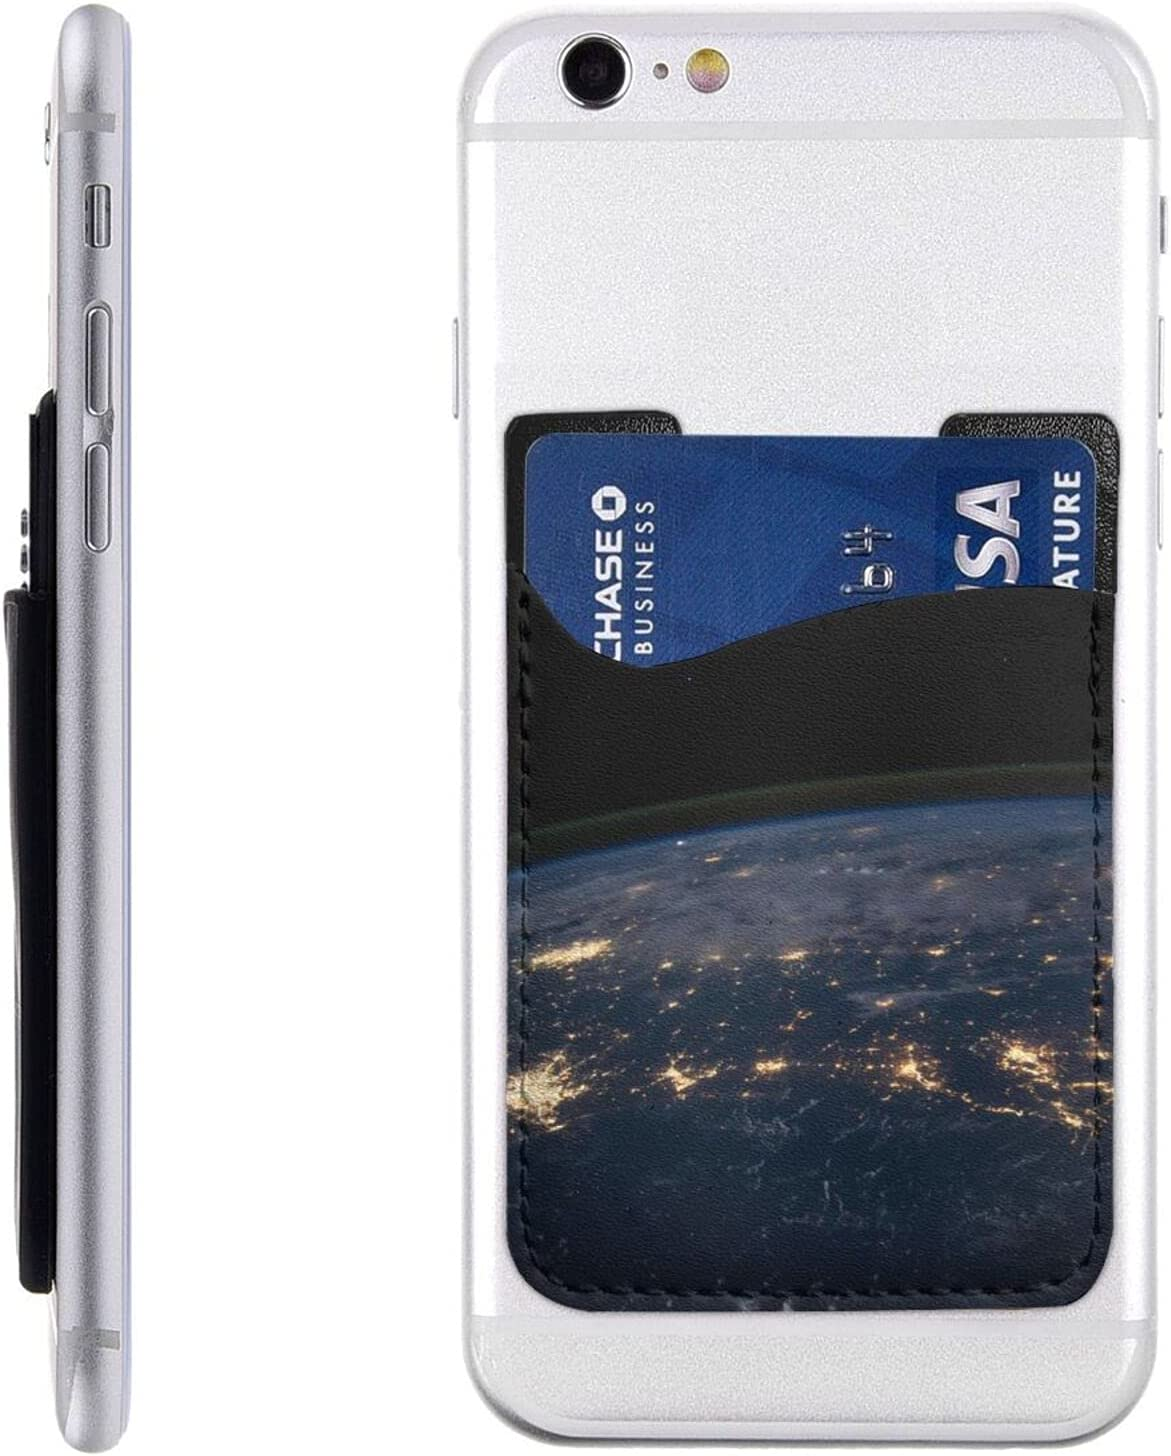 OFFicial site View of Earth from The Outer Cell Phone 25% OFF Card Space Holder